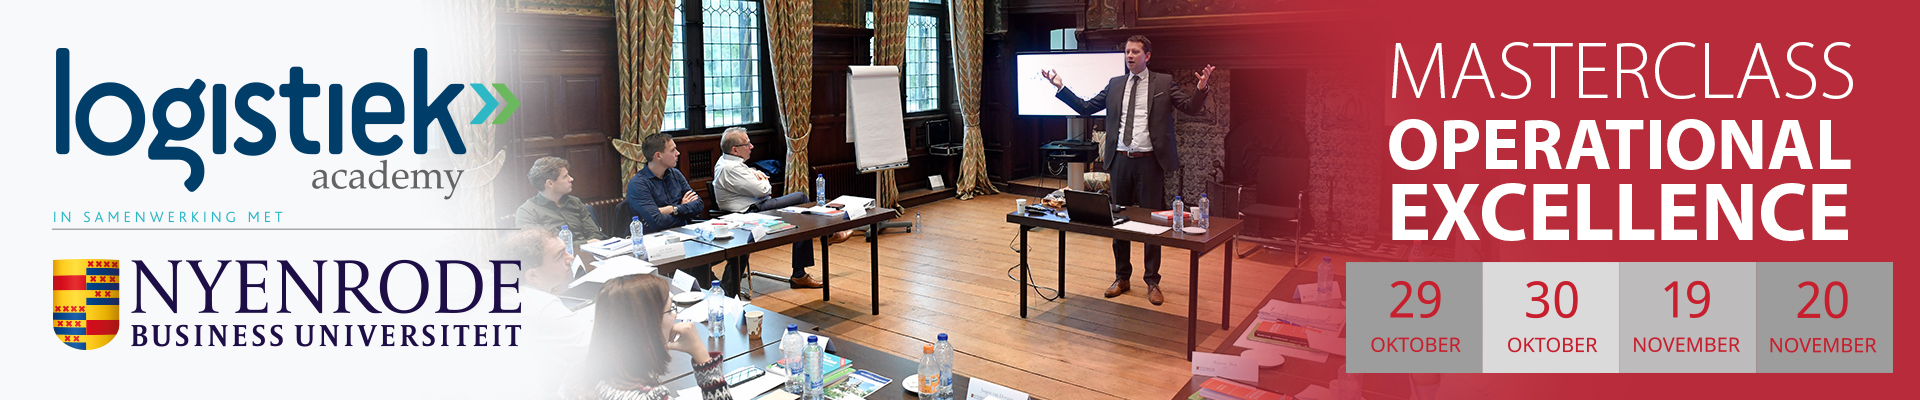 Masterclass Operational Excellence Najaar 2019